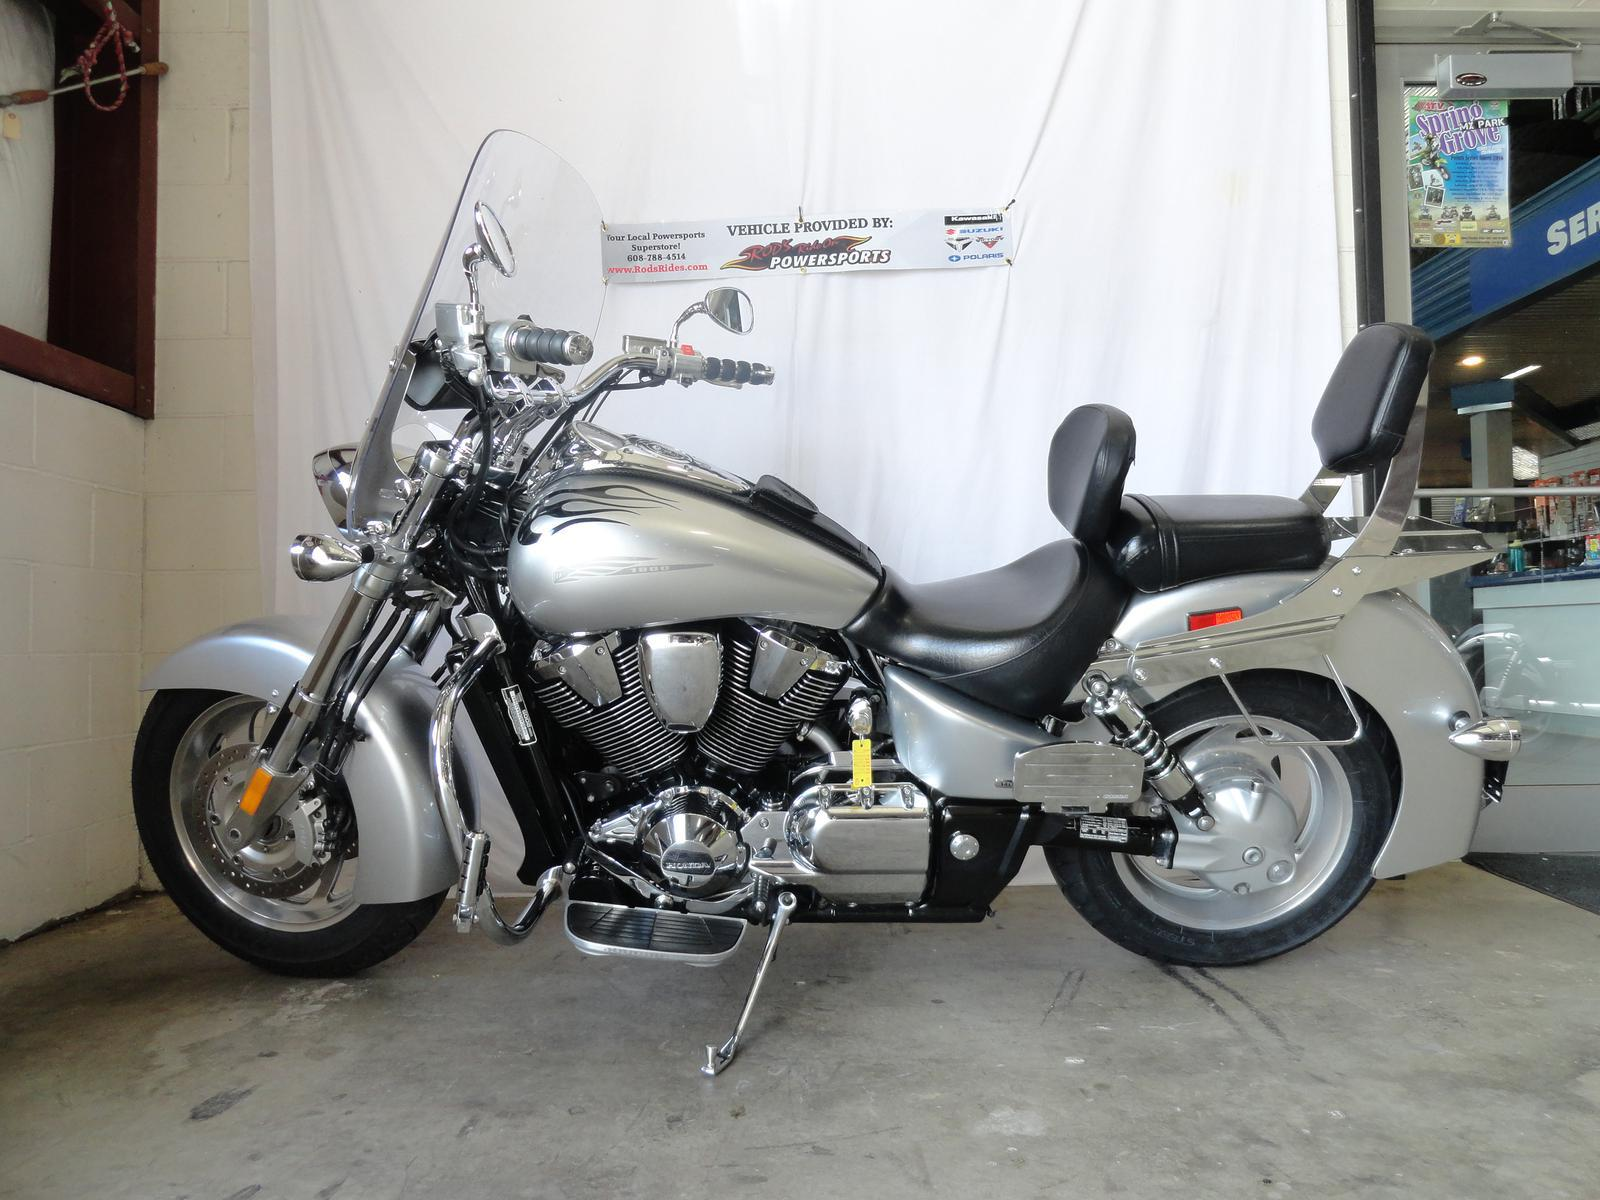 inventory from genuine scooter and honda rod's ride on powersports